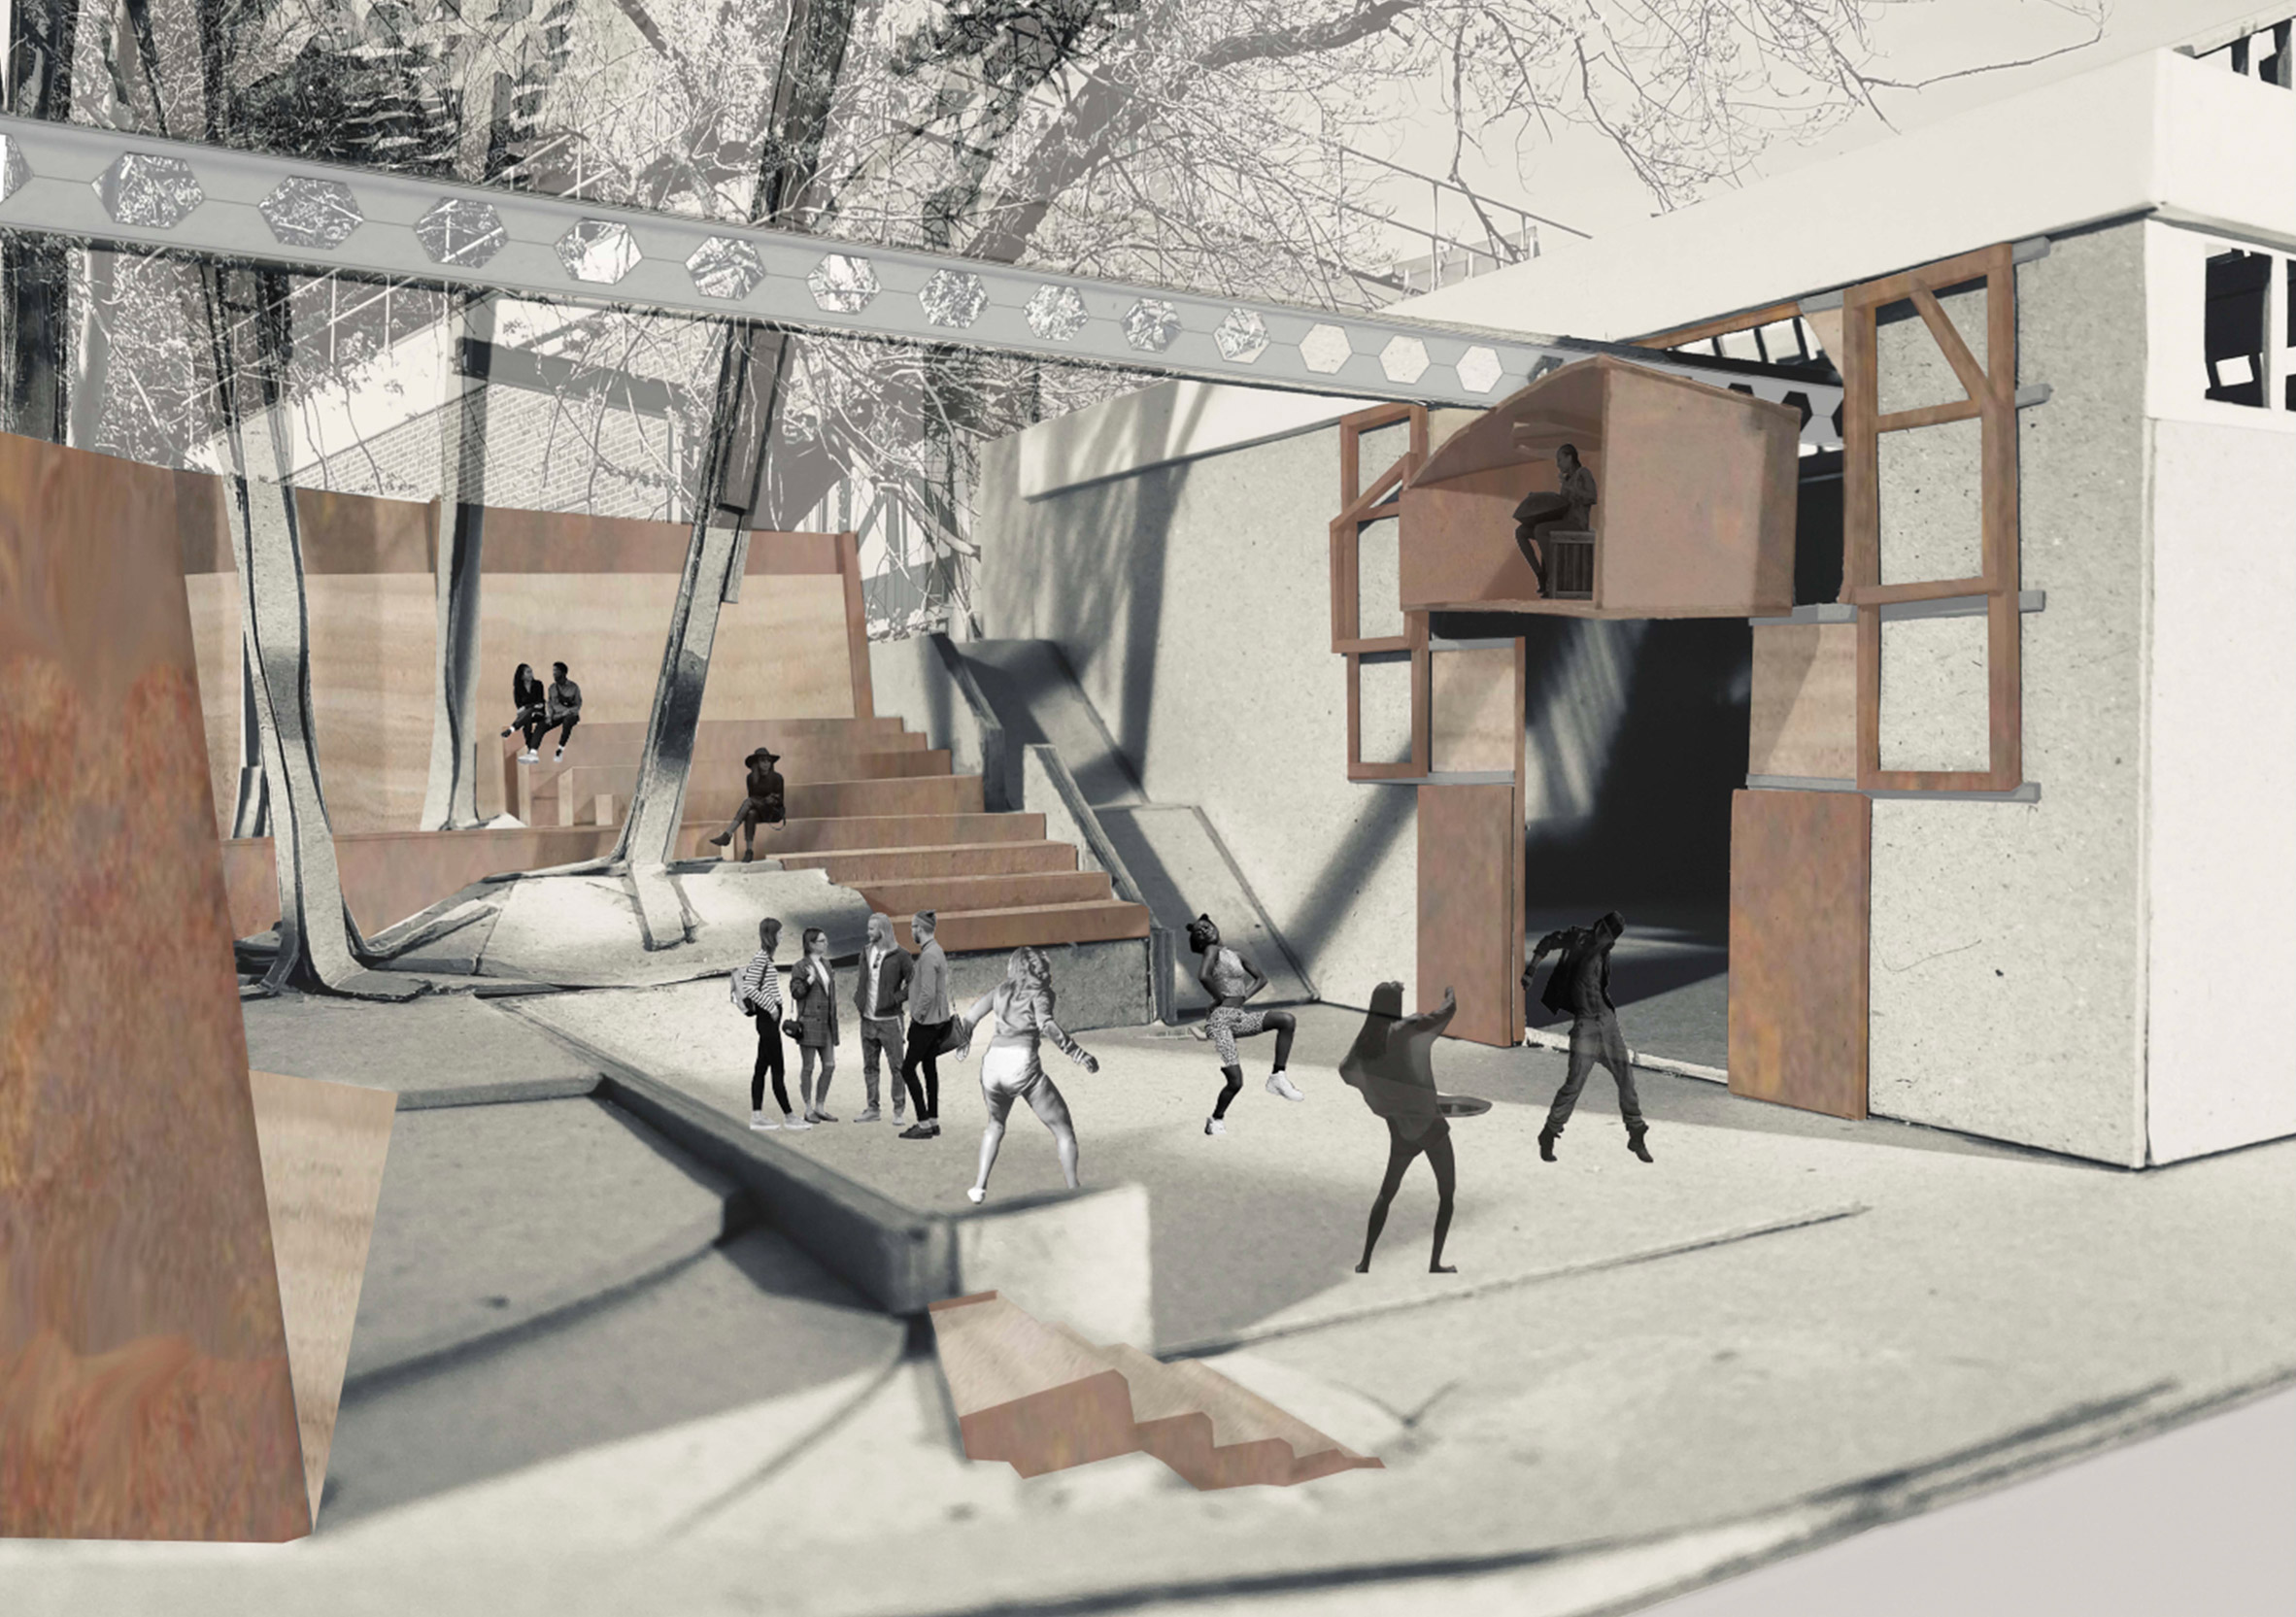 University of Brighton students designed the projects